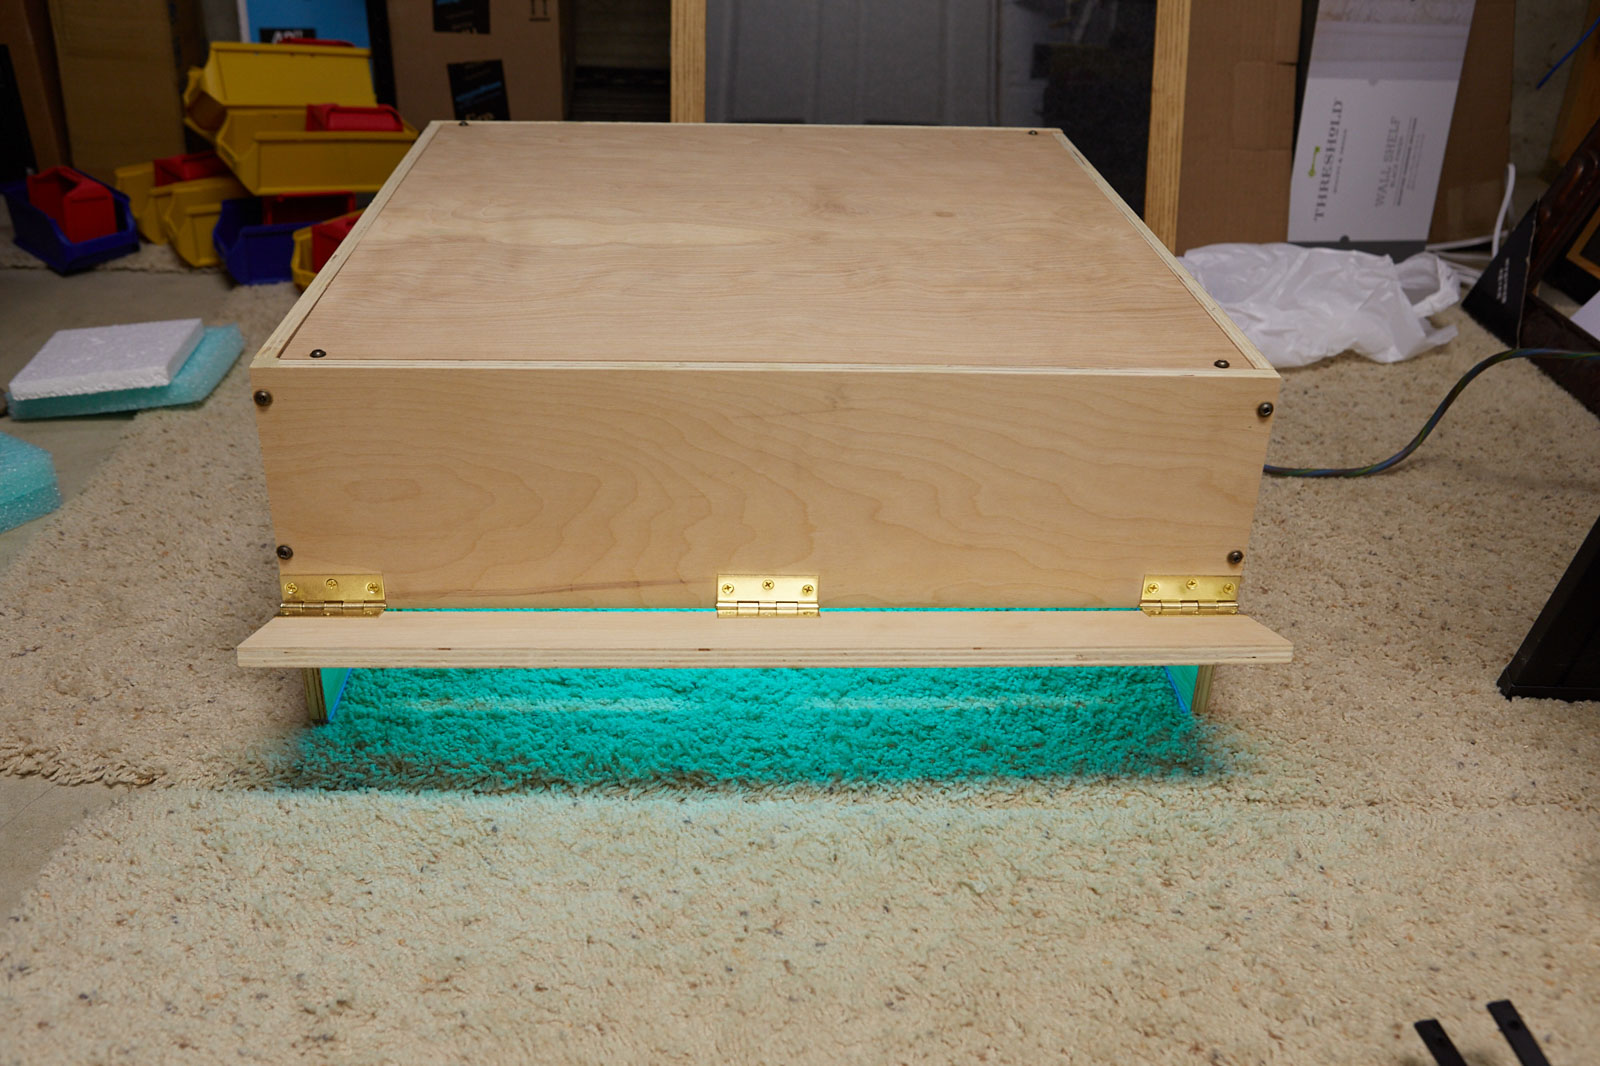 UV Curing rig using Solacure lamps, power on